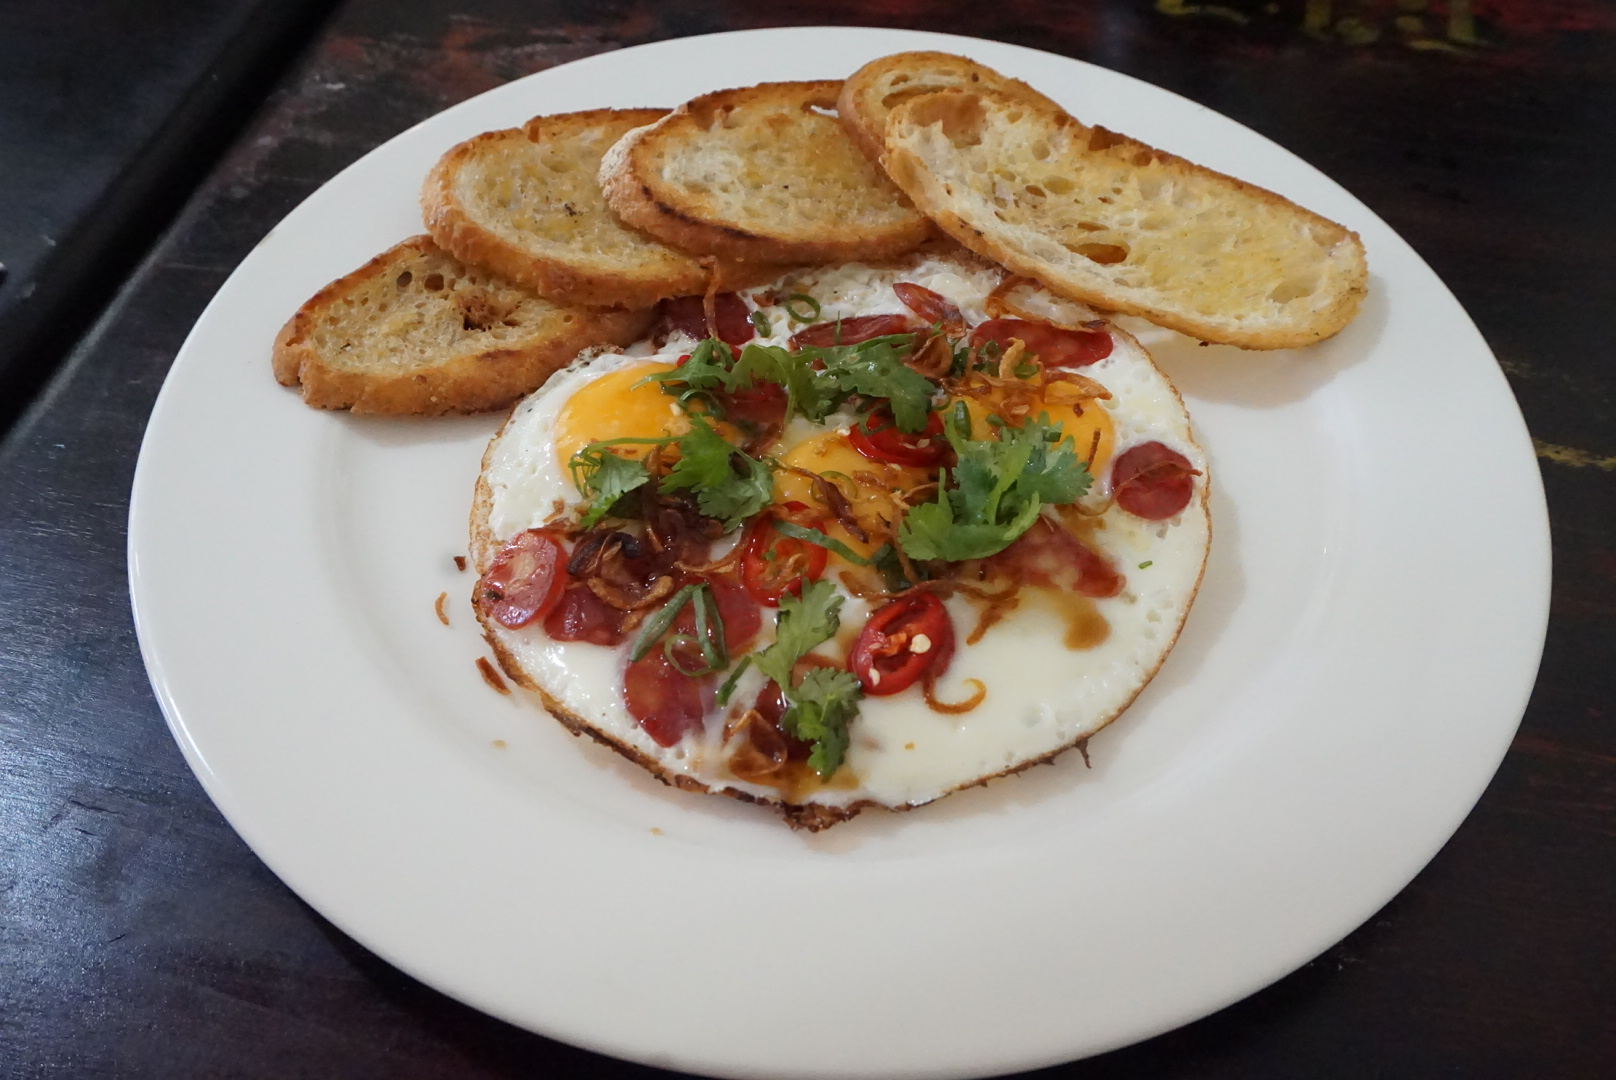 Fried eggs, lap cheong, lime-soy, shallots & bread ($14)